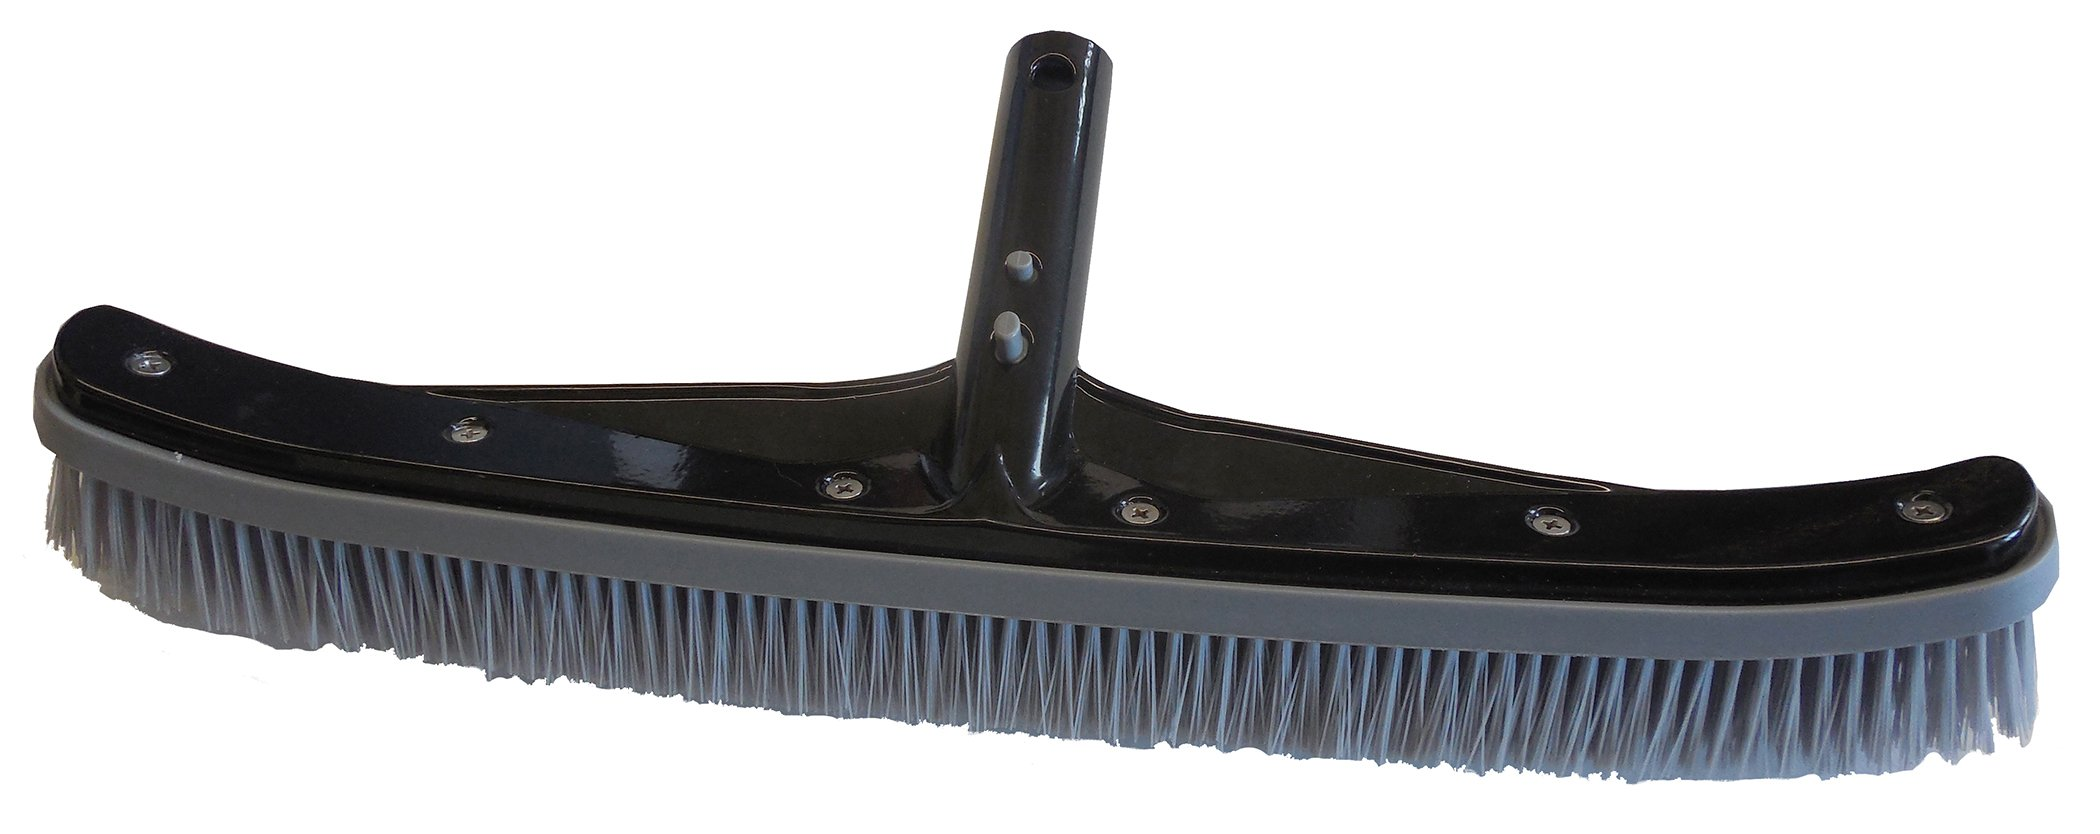 Jed Pool Tools 70-292 Professional Grade Wall Brush, 18-Inc, Inch by JED Pool Tools